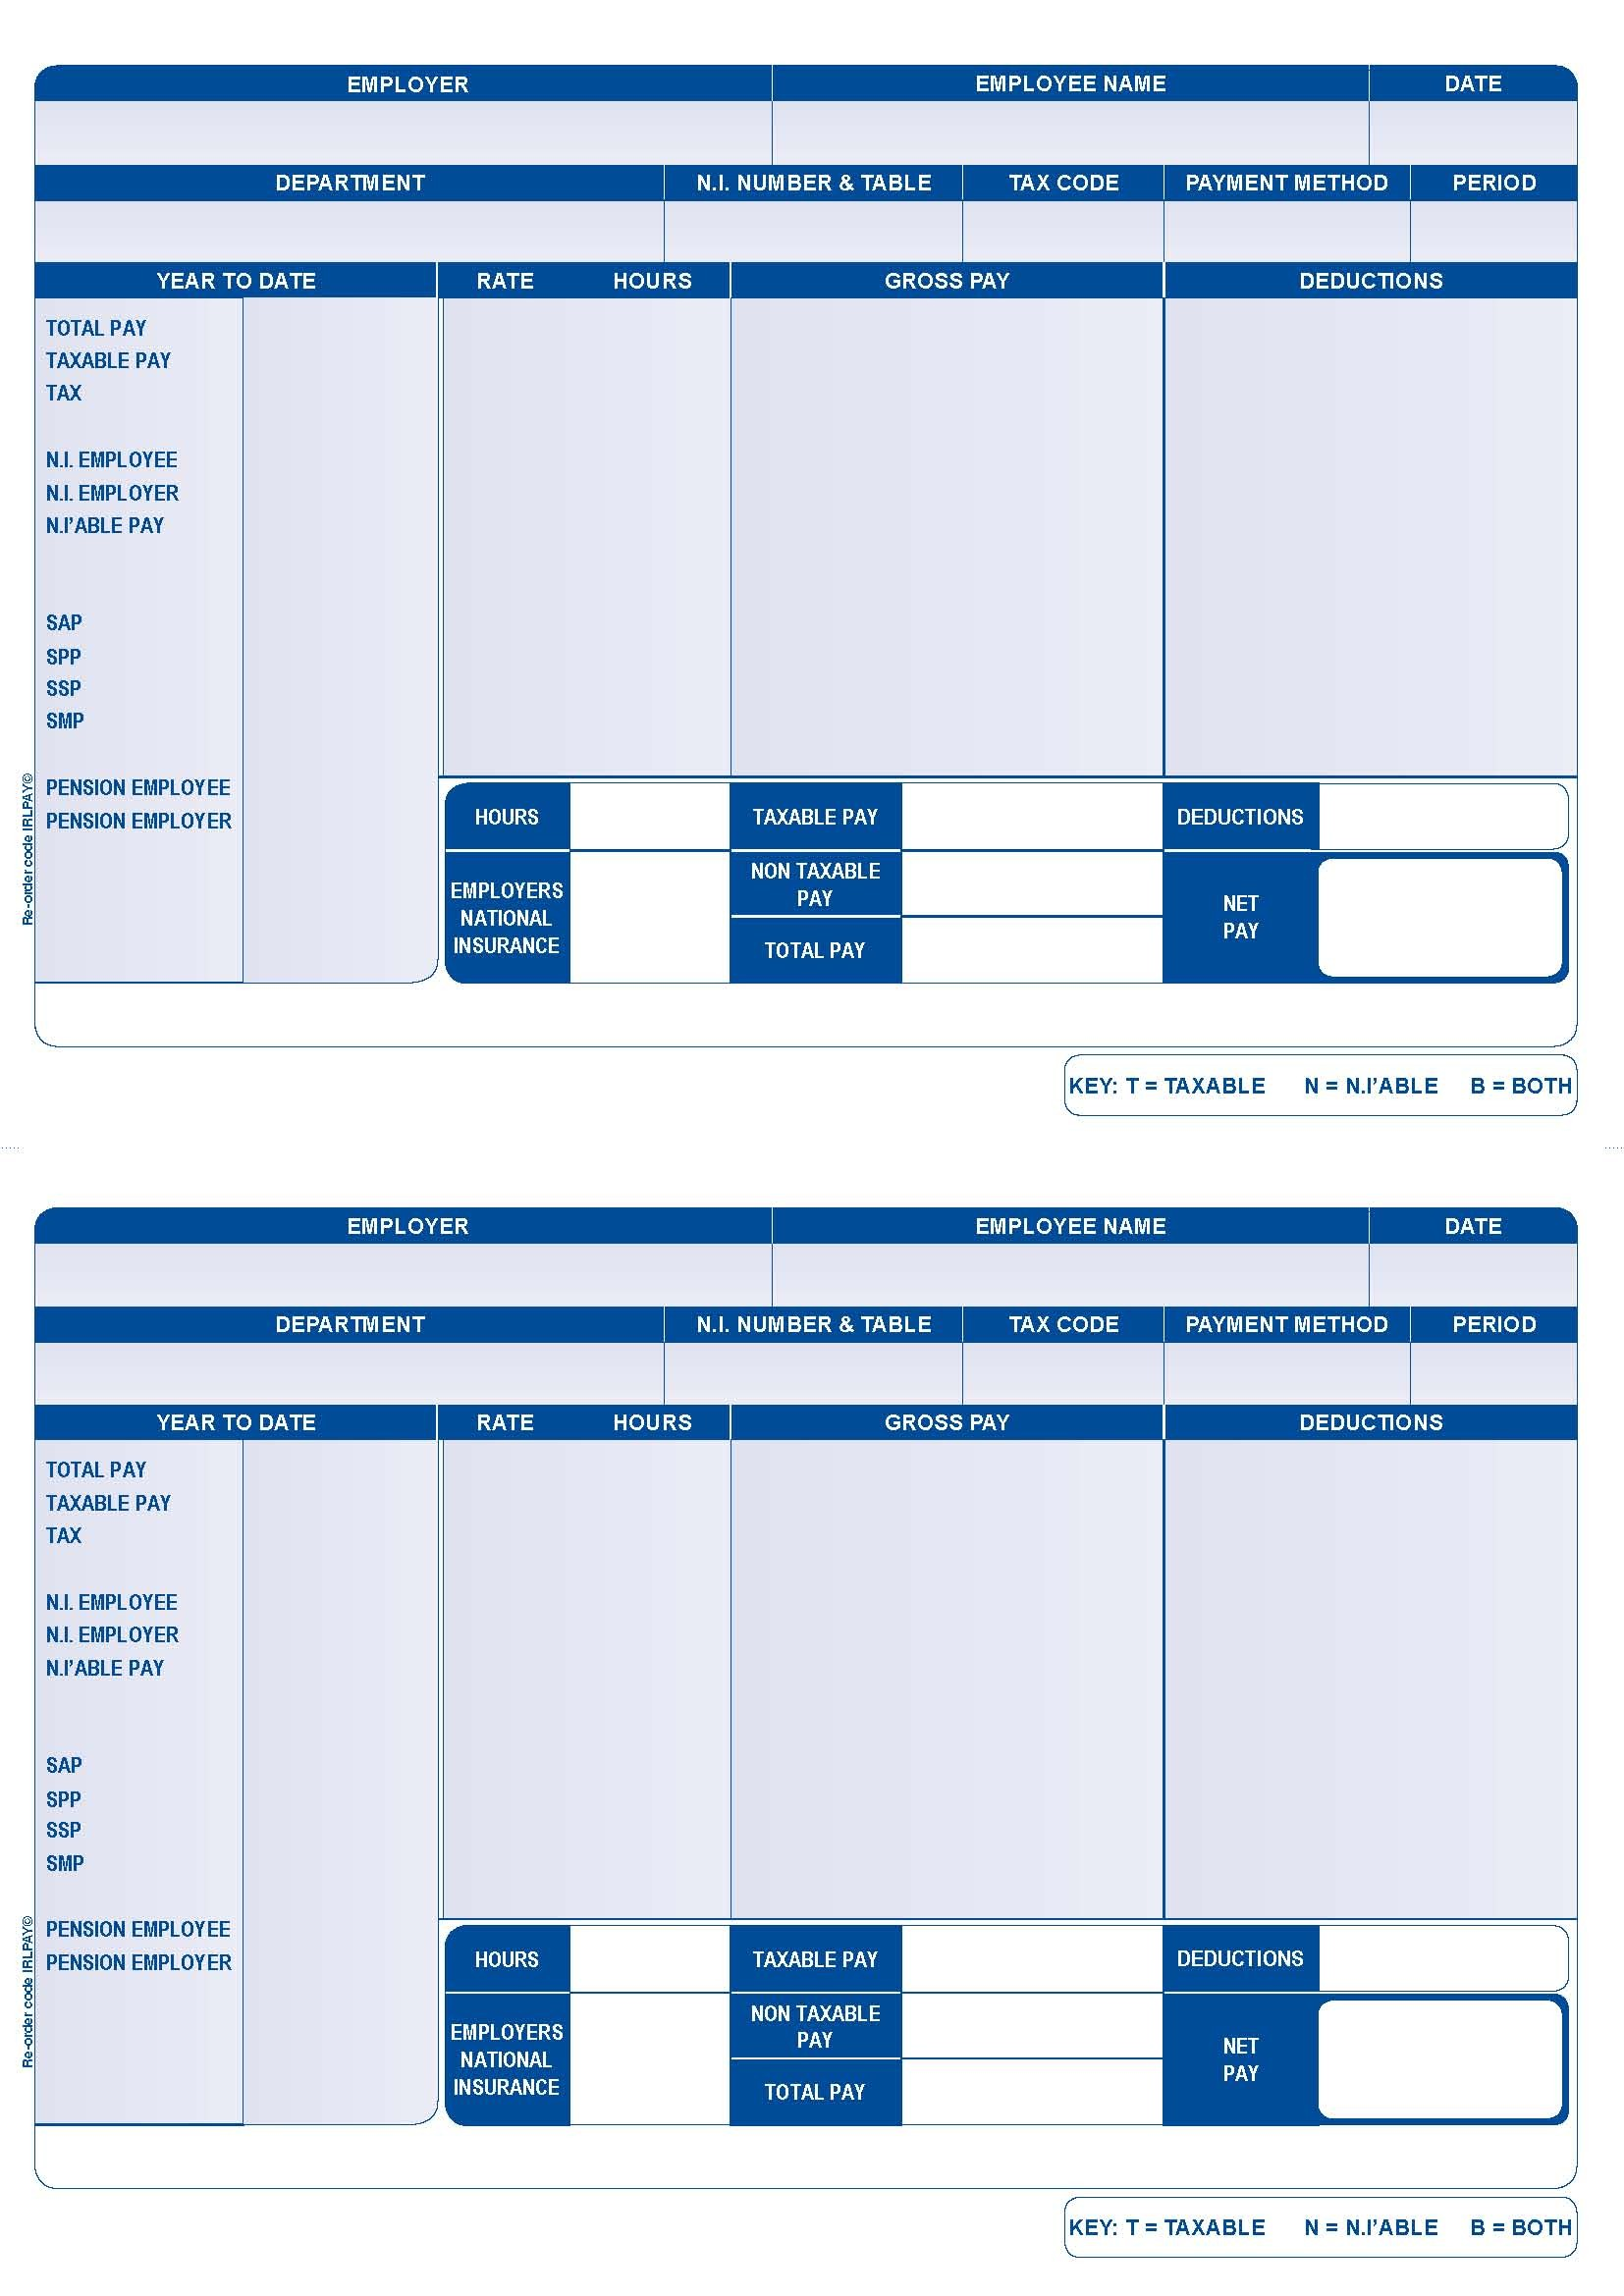 Free Uk Payslip Template Download Commonpenceco IRLPAY Free Uk Payslip  Template Download Payroll Payslip Template Payroll Payslip Template  Payroll Payslip Template